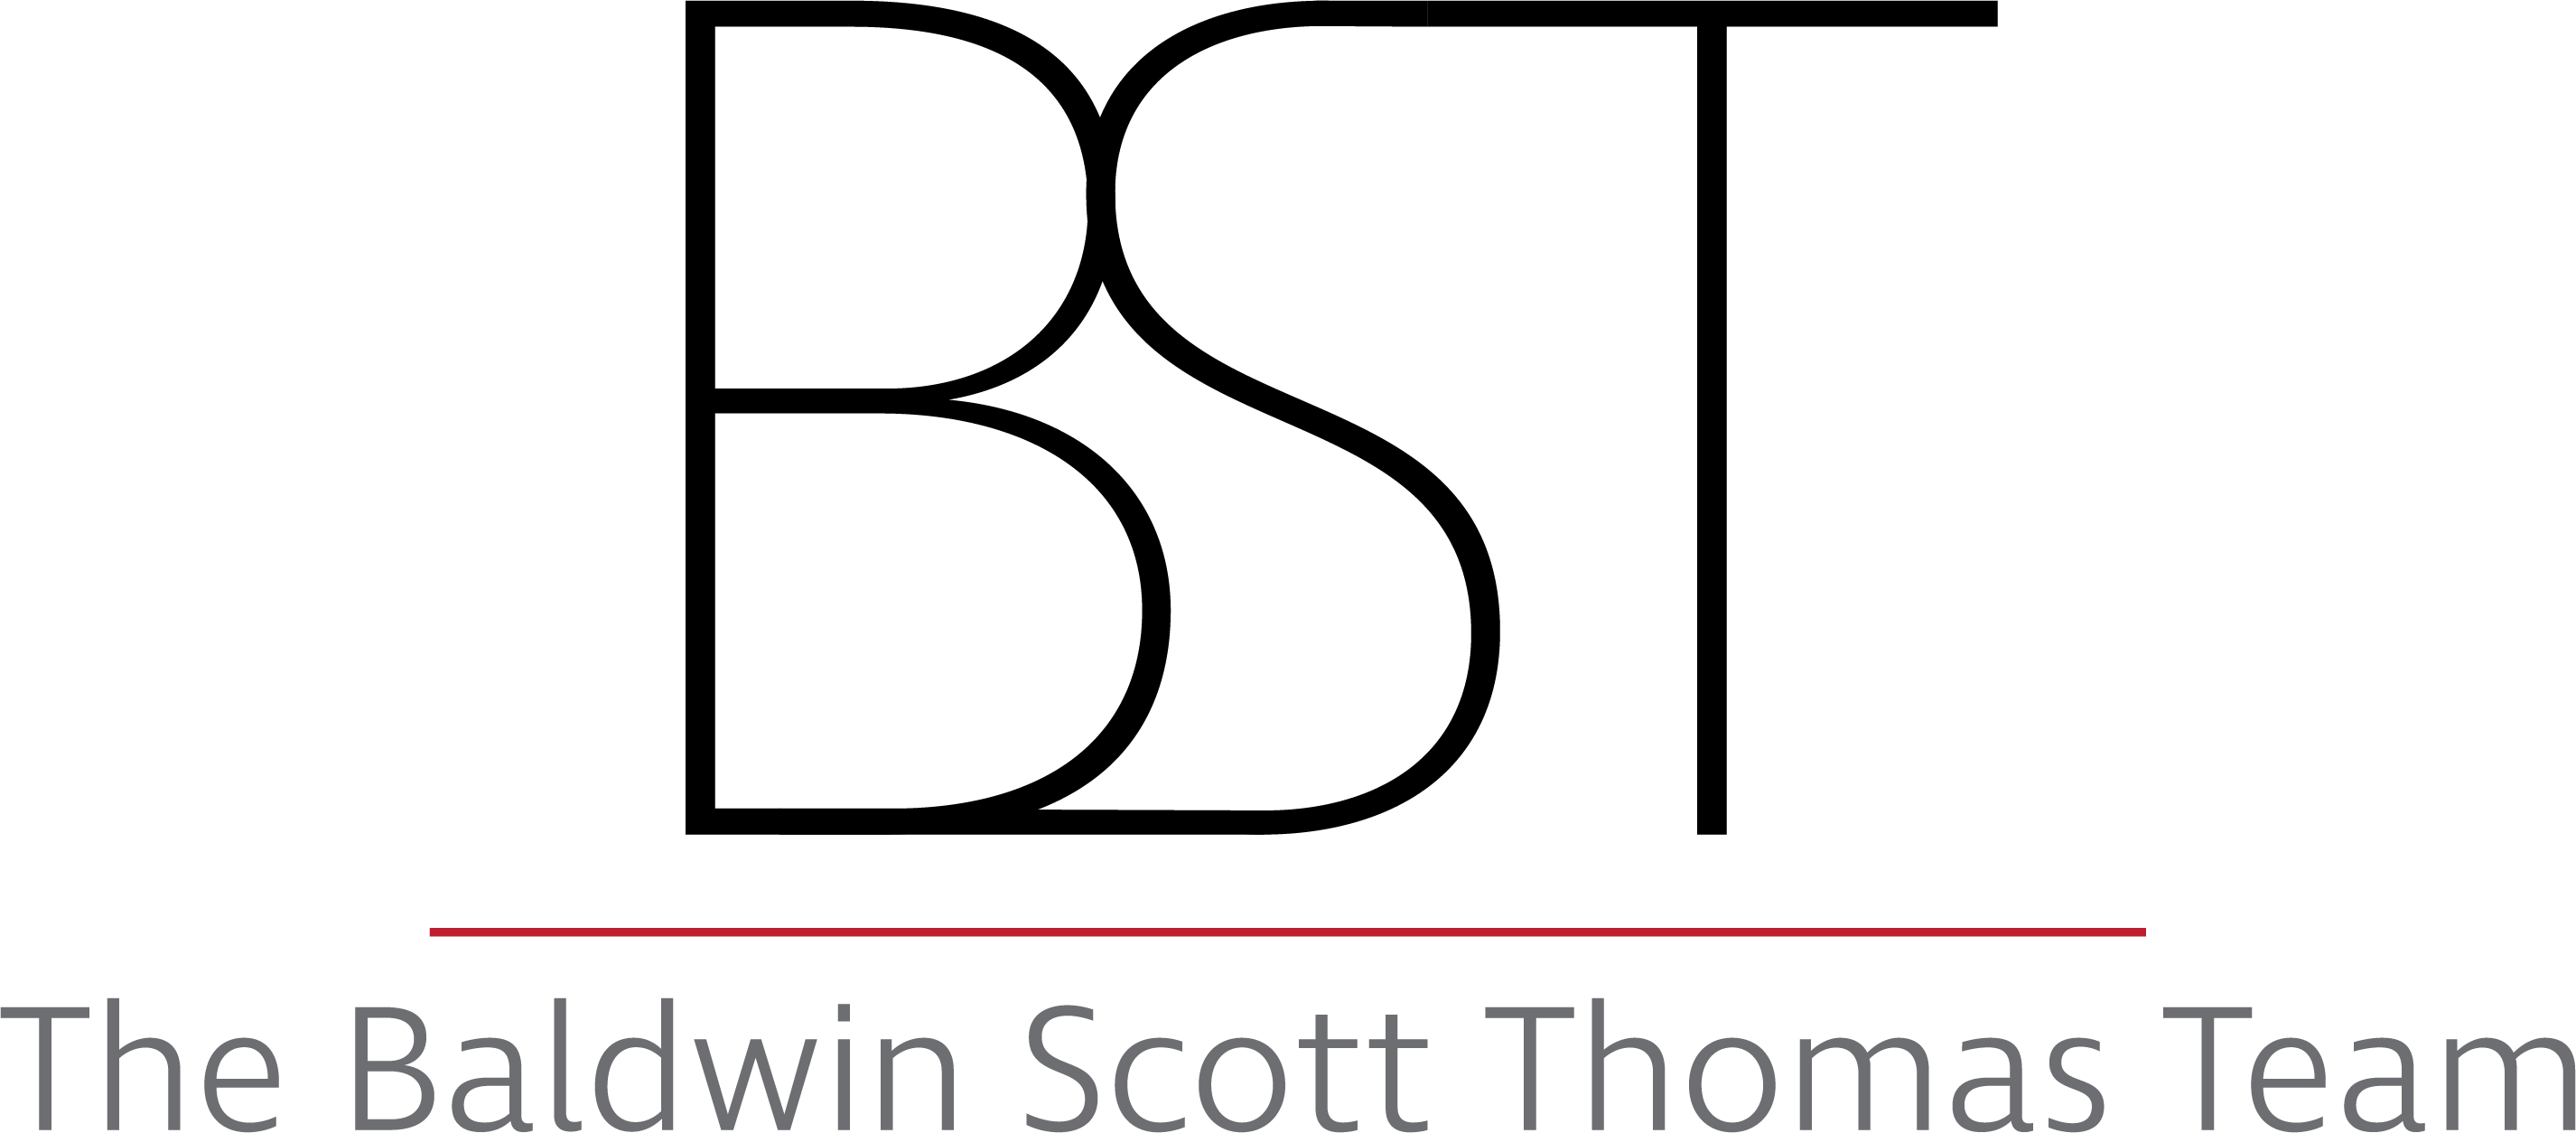 The Baldwin Scott Thomas Team